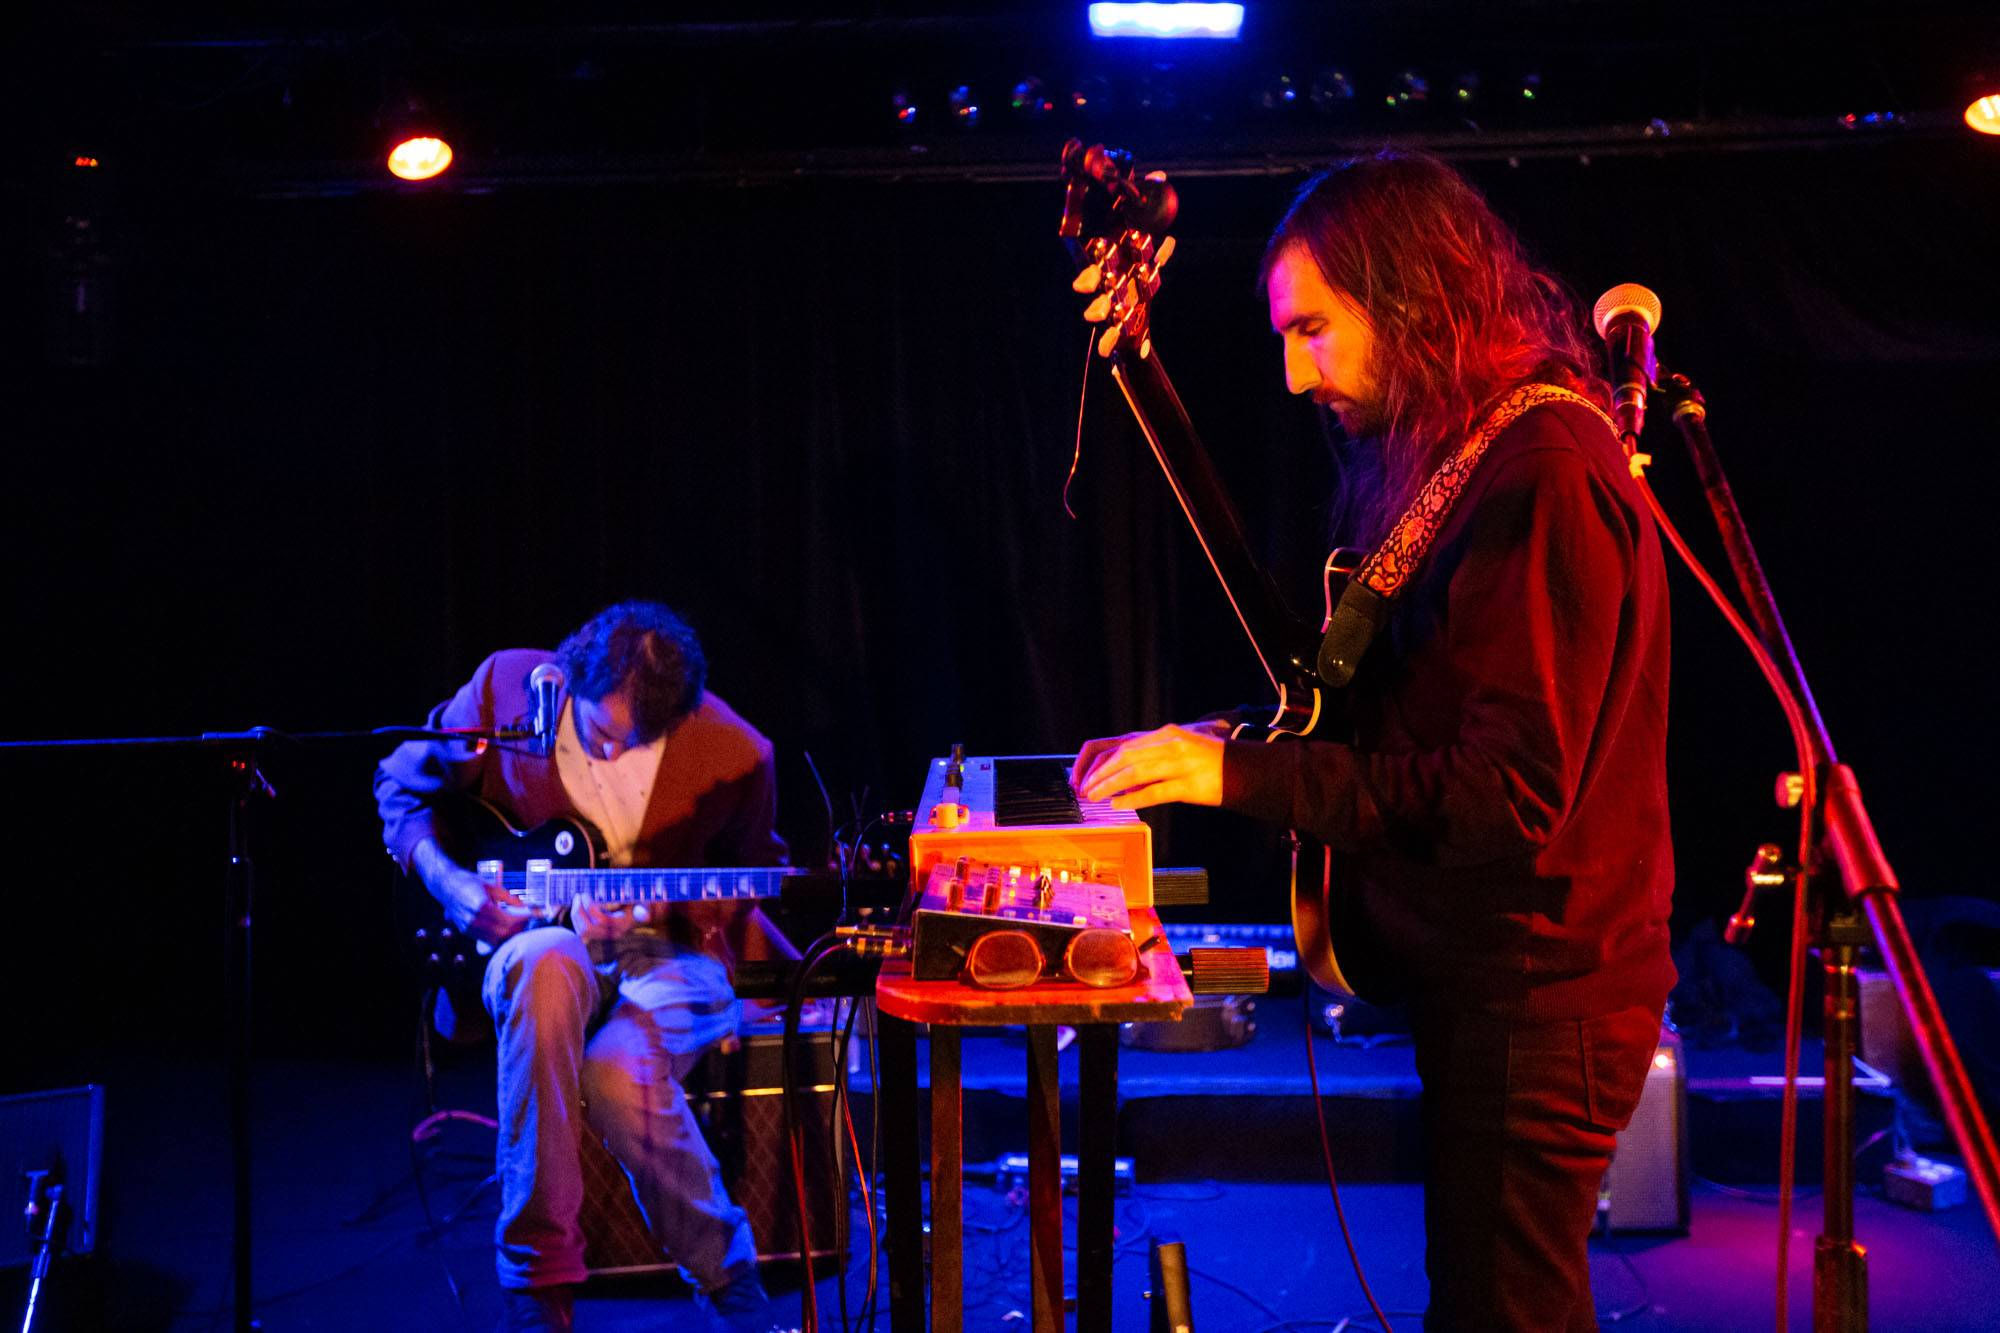 Mutual Benefit at the Biltmore Cabaret, Vancouver, Nov 21 2018. Kirk Chantraine photo.